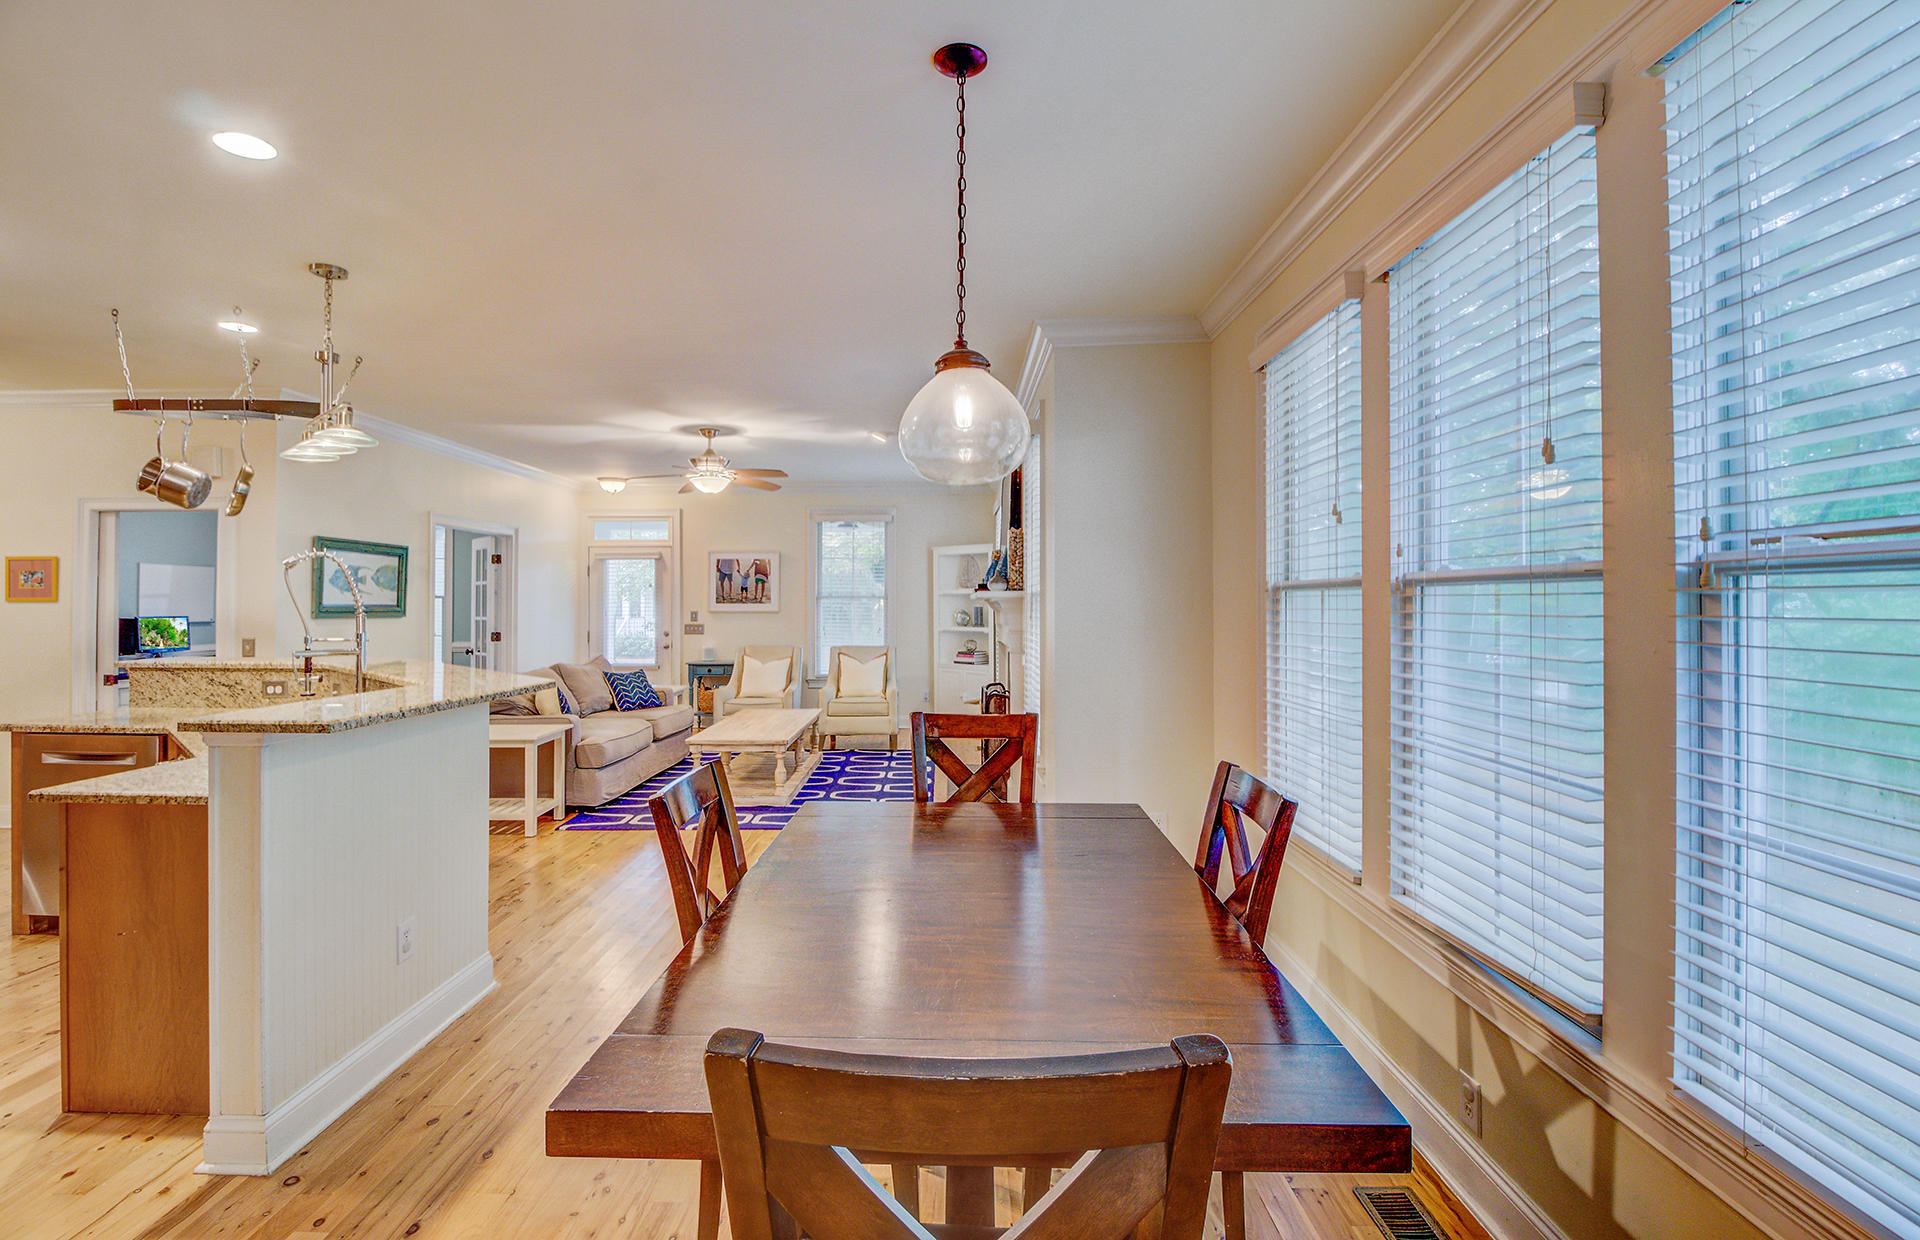 The Villages In St Johns Woods Homes For Sale - 5032 Coral Reef, Johns Island, SC - 23